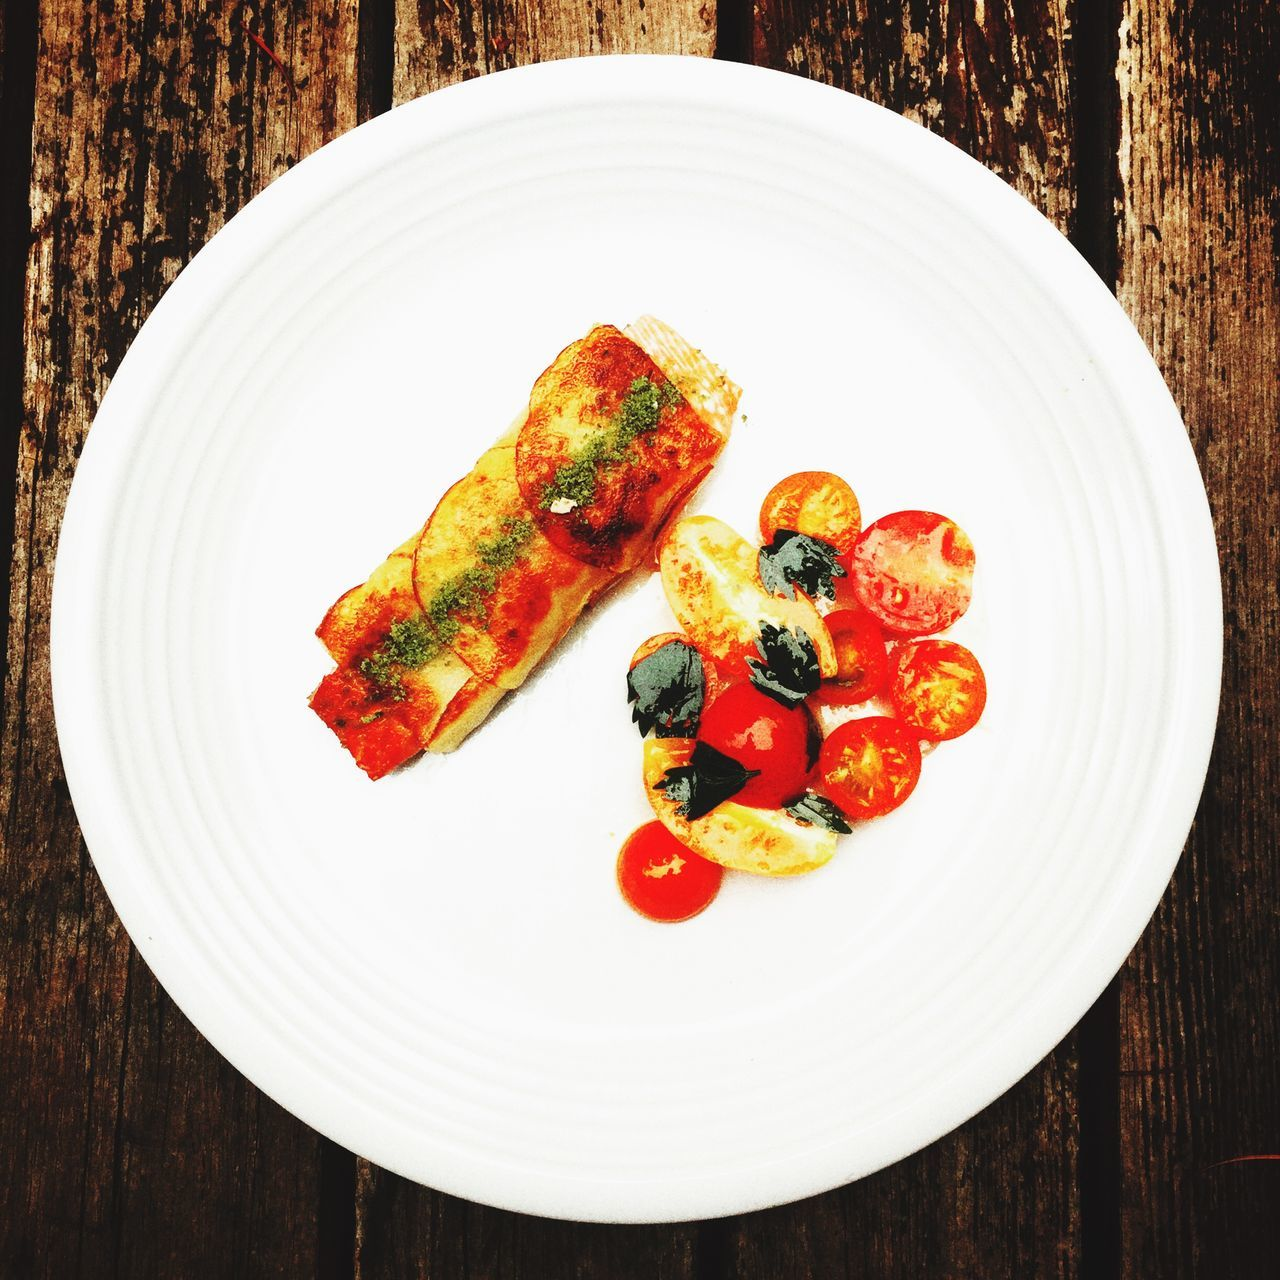 High Angle View Of Crusted Salmon With Tomatoes In Plate